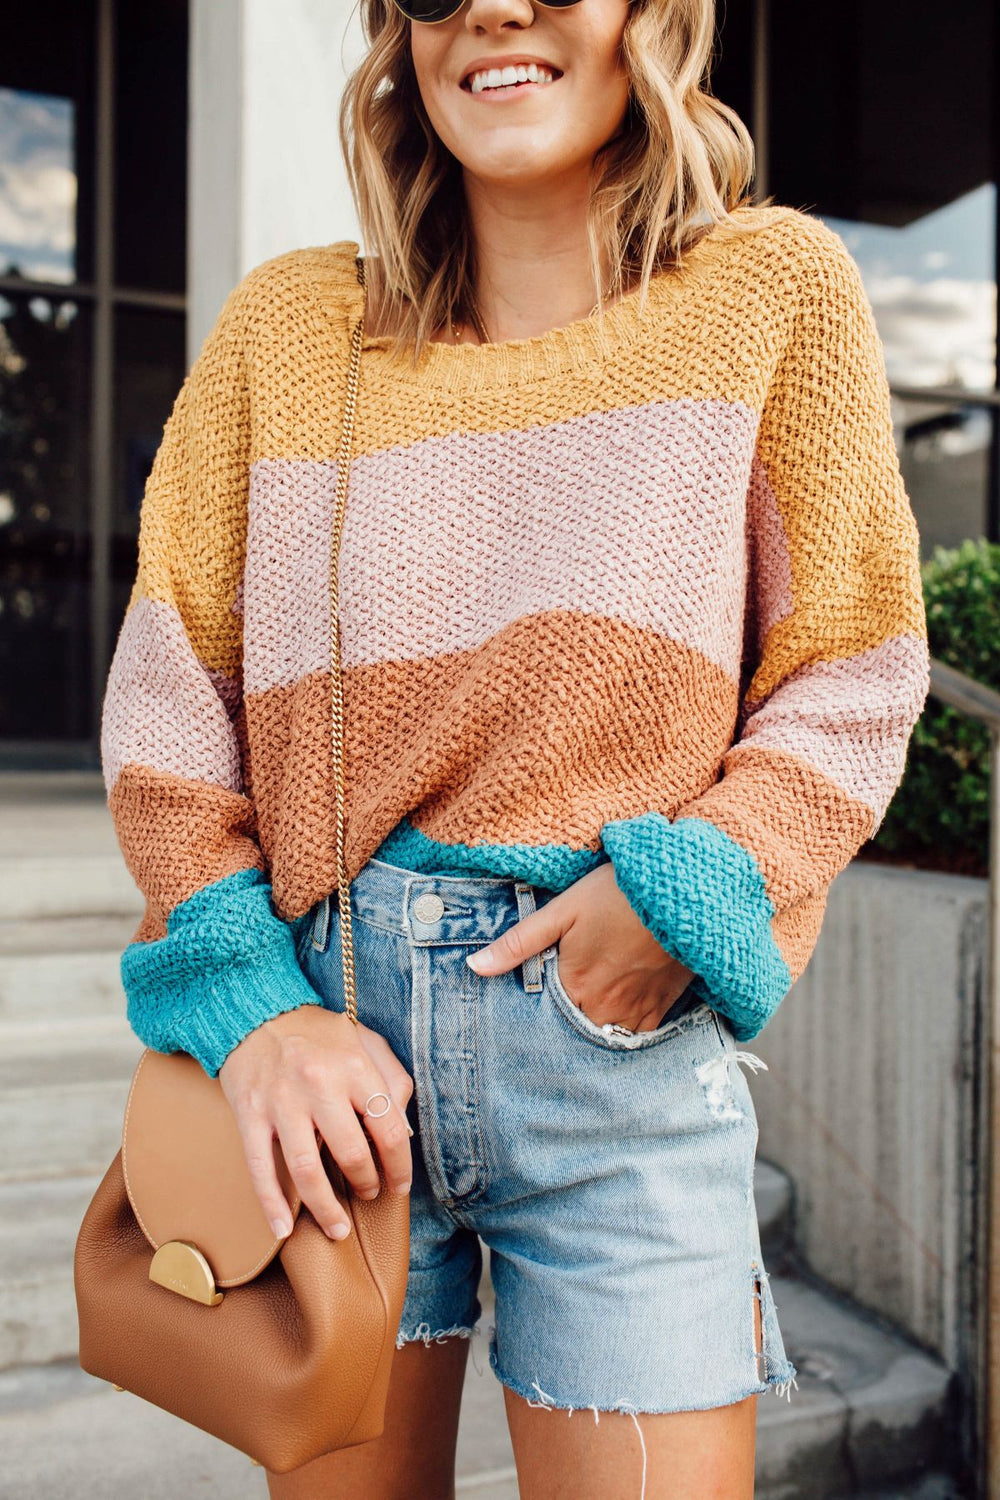 Oceanside Sunset Sweater Inspired by Ashley from Twenties Girl Style